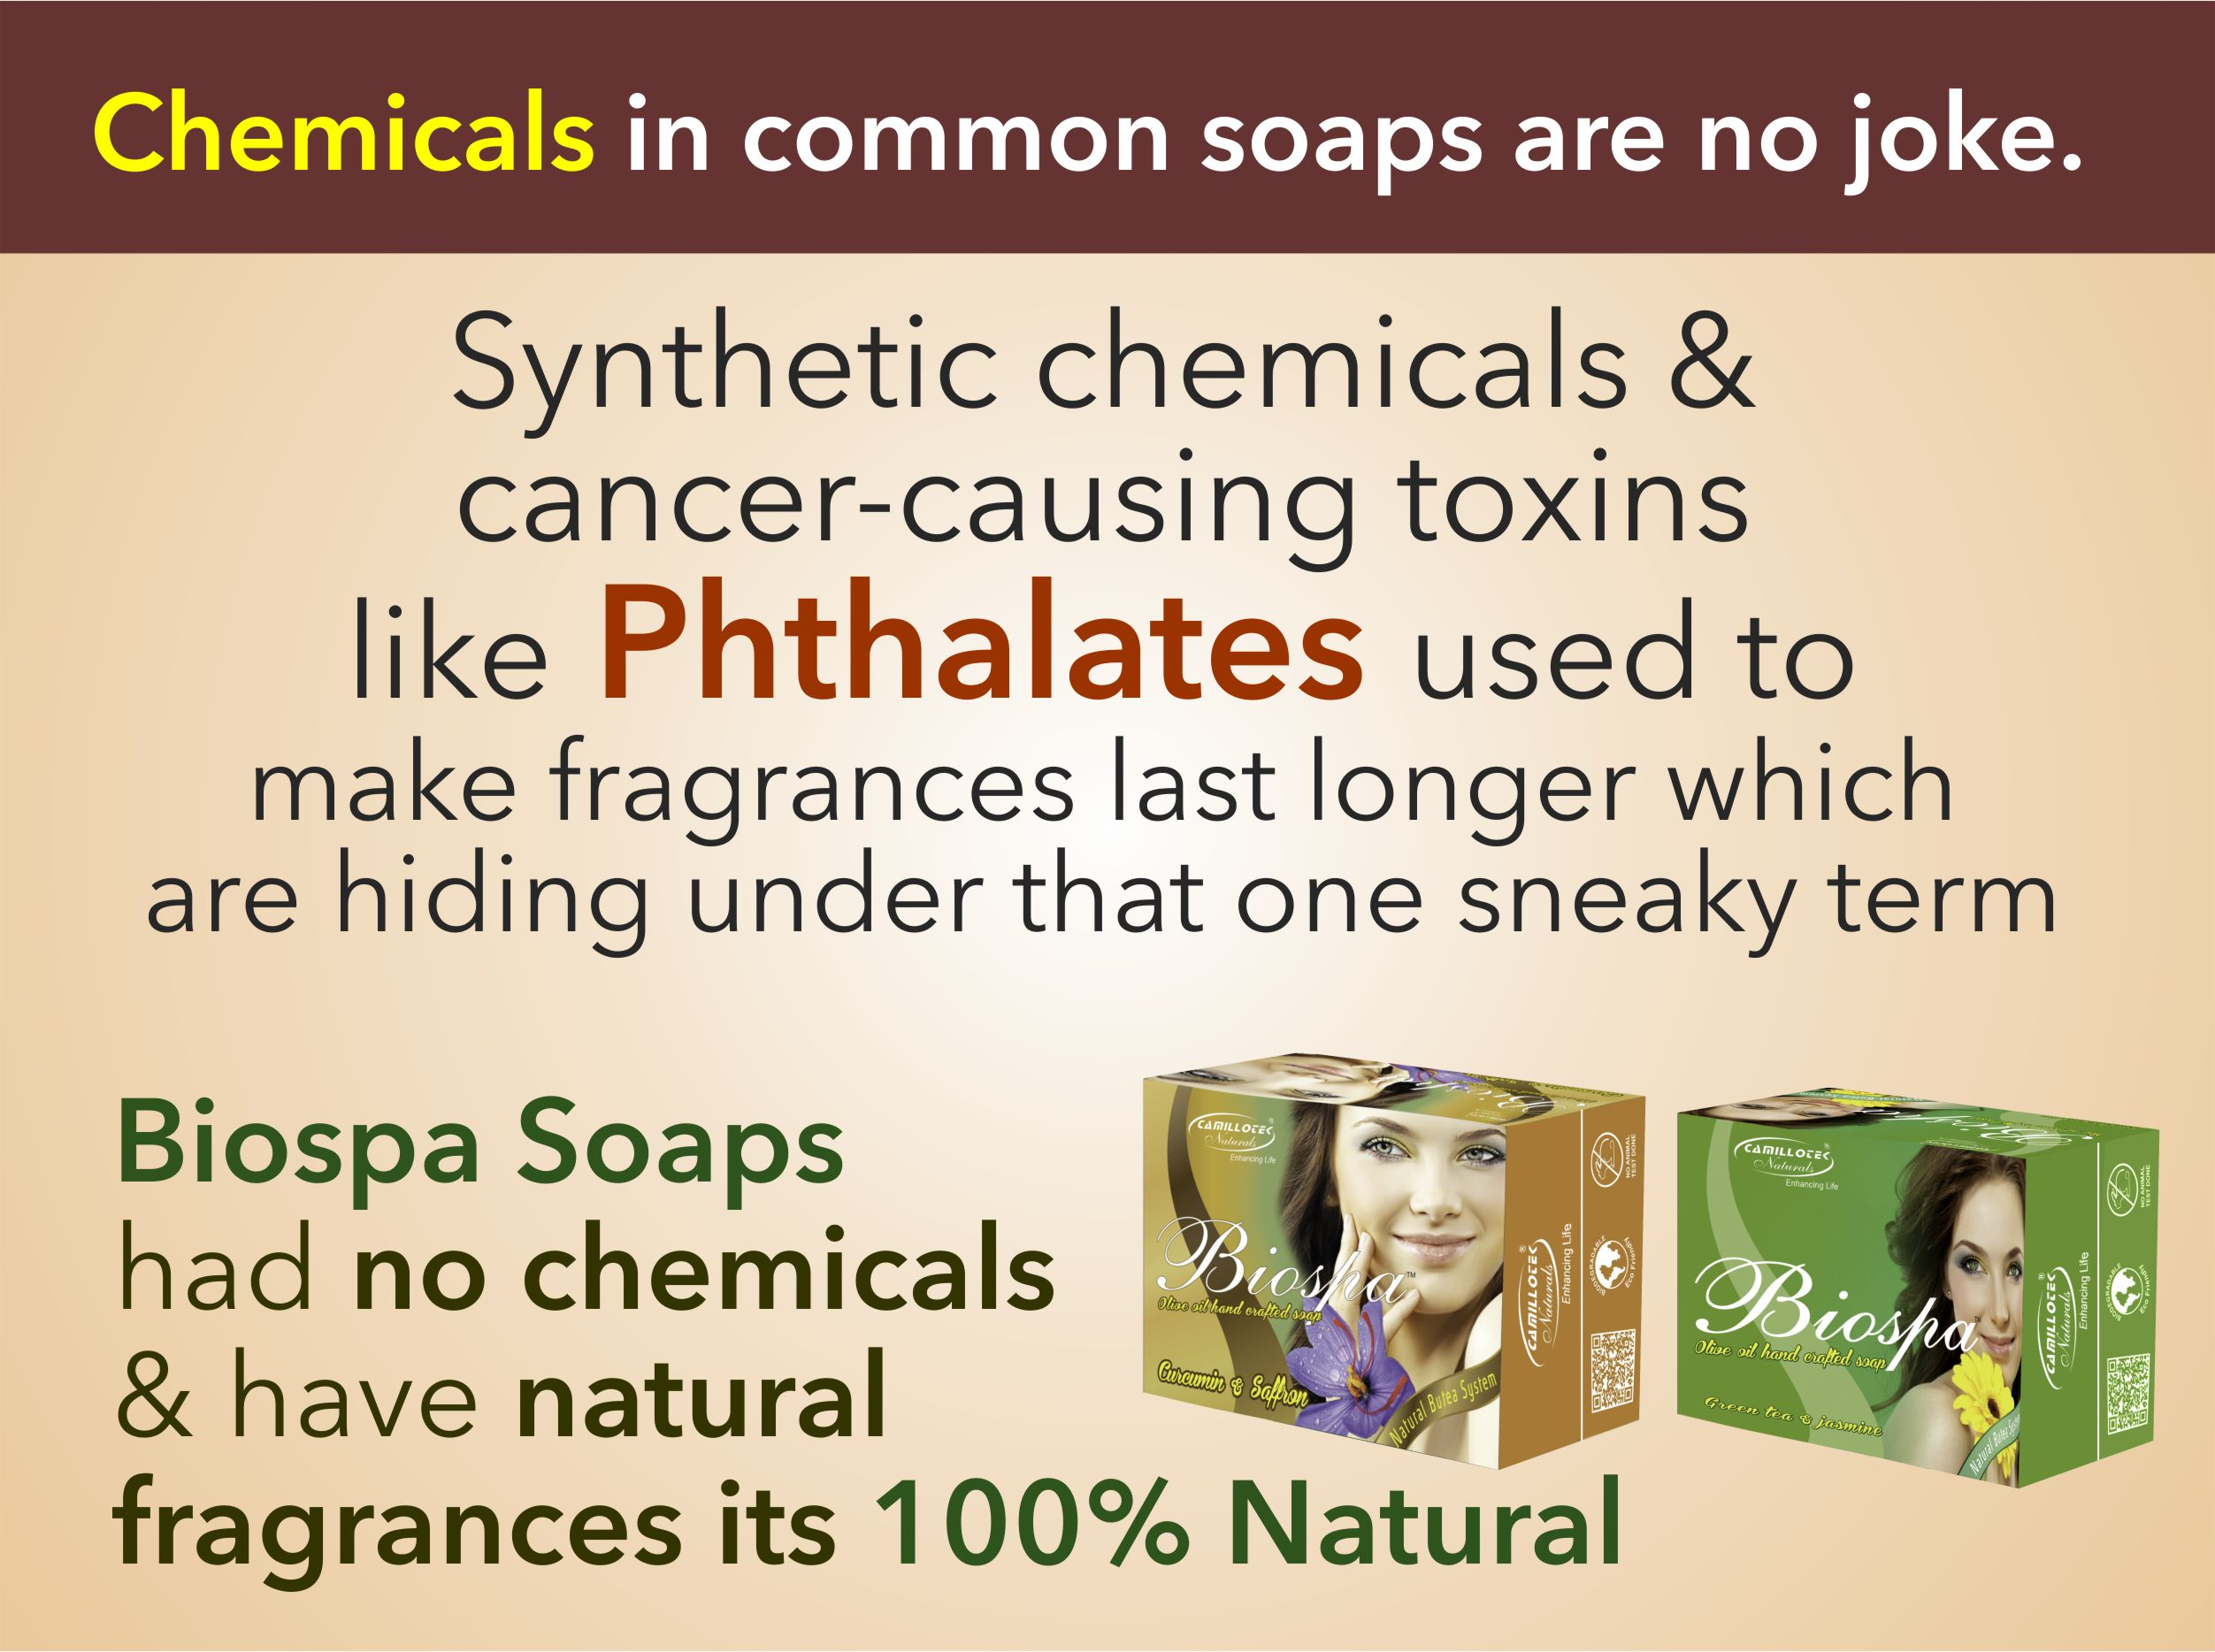 Biospa Jasmine & Curcumin Certified organic and natural soaps  Traditionally handmade in small batches without Palm Oil. Options for extra sensitive skin. Scents come from pure essential oils.  Natural soap handmade with organic olive oil, pure essential oils, wild & organic herbs, plus sustainable business practices. Get the finest Toxin-free, natural soap products.  Three Major Benefits of our Natural Soaps 1. INGREDIENTS : The very best reason to use our handmade soap is the ingredients. Typically our handmade soap is made of vegetable oils and butters that are rich in antioxidants, vitamins and nutrients that are essential to healthy skin.  2. REAL SOAP : Now a days soap is created for commercial purpose with chemicals not for health concern. But our Biospa soap is 100% Natural & no harmful and unnecessary ingredients are NOT added to make it.  3. GLYCERIN : Glycerin is a precious emollient that softens and maintains water balance by attracting moisture to skin.